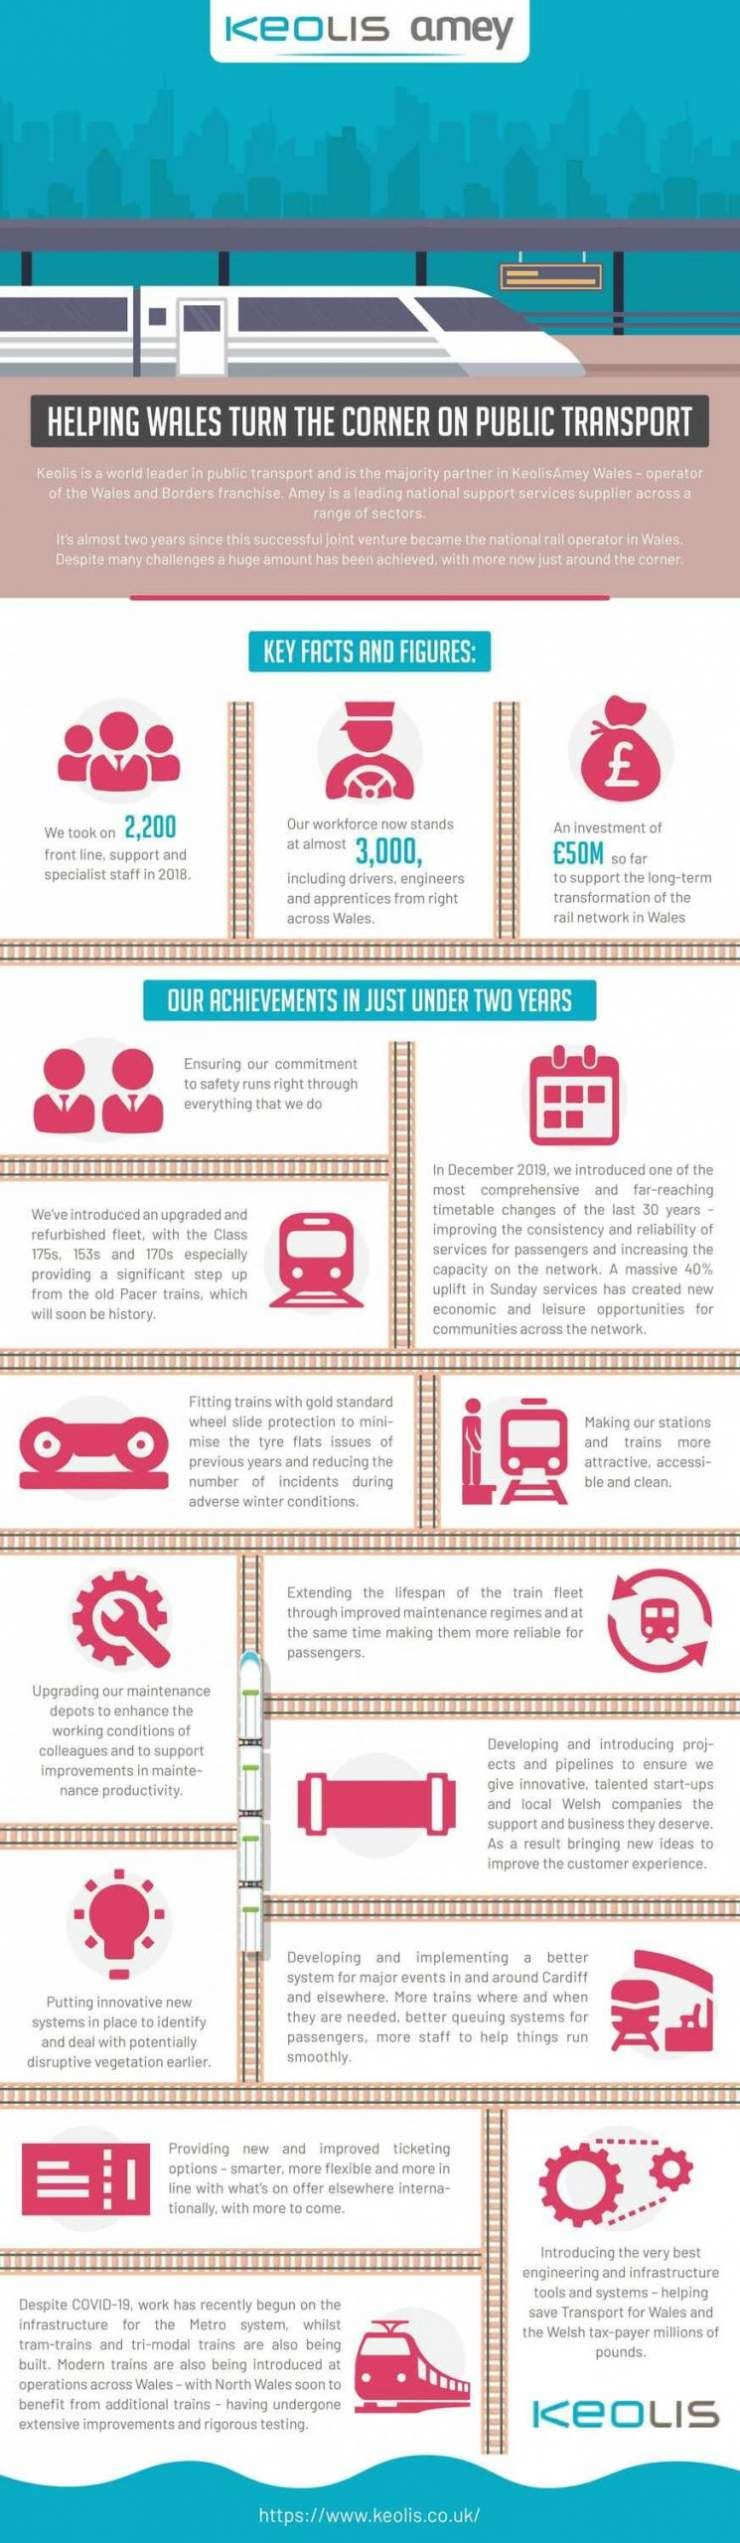 Helping Wales Turn the Corner on Public Transport #infographic